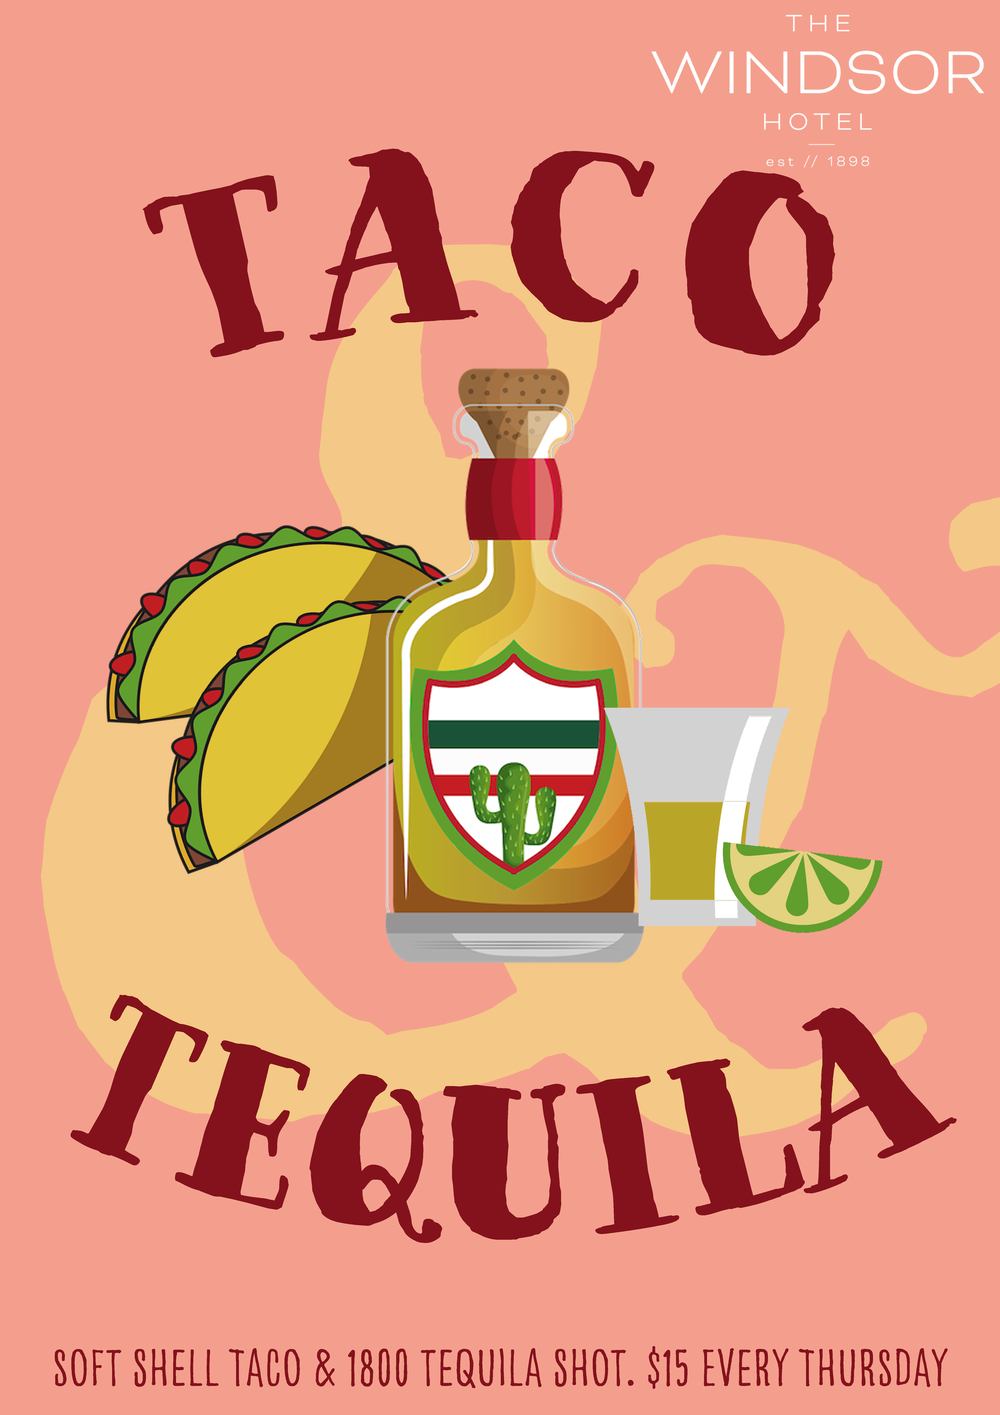 TACO & TEQUILA THURSDAYS   Thursday like it's Friday with a taco & tequila board for only $15. Why not have 3?!  // Bars only //